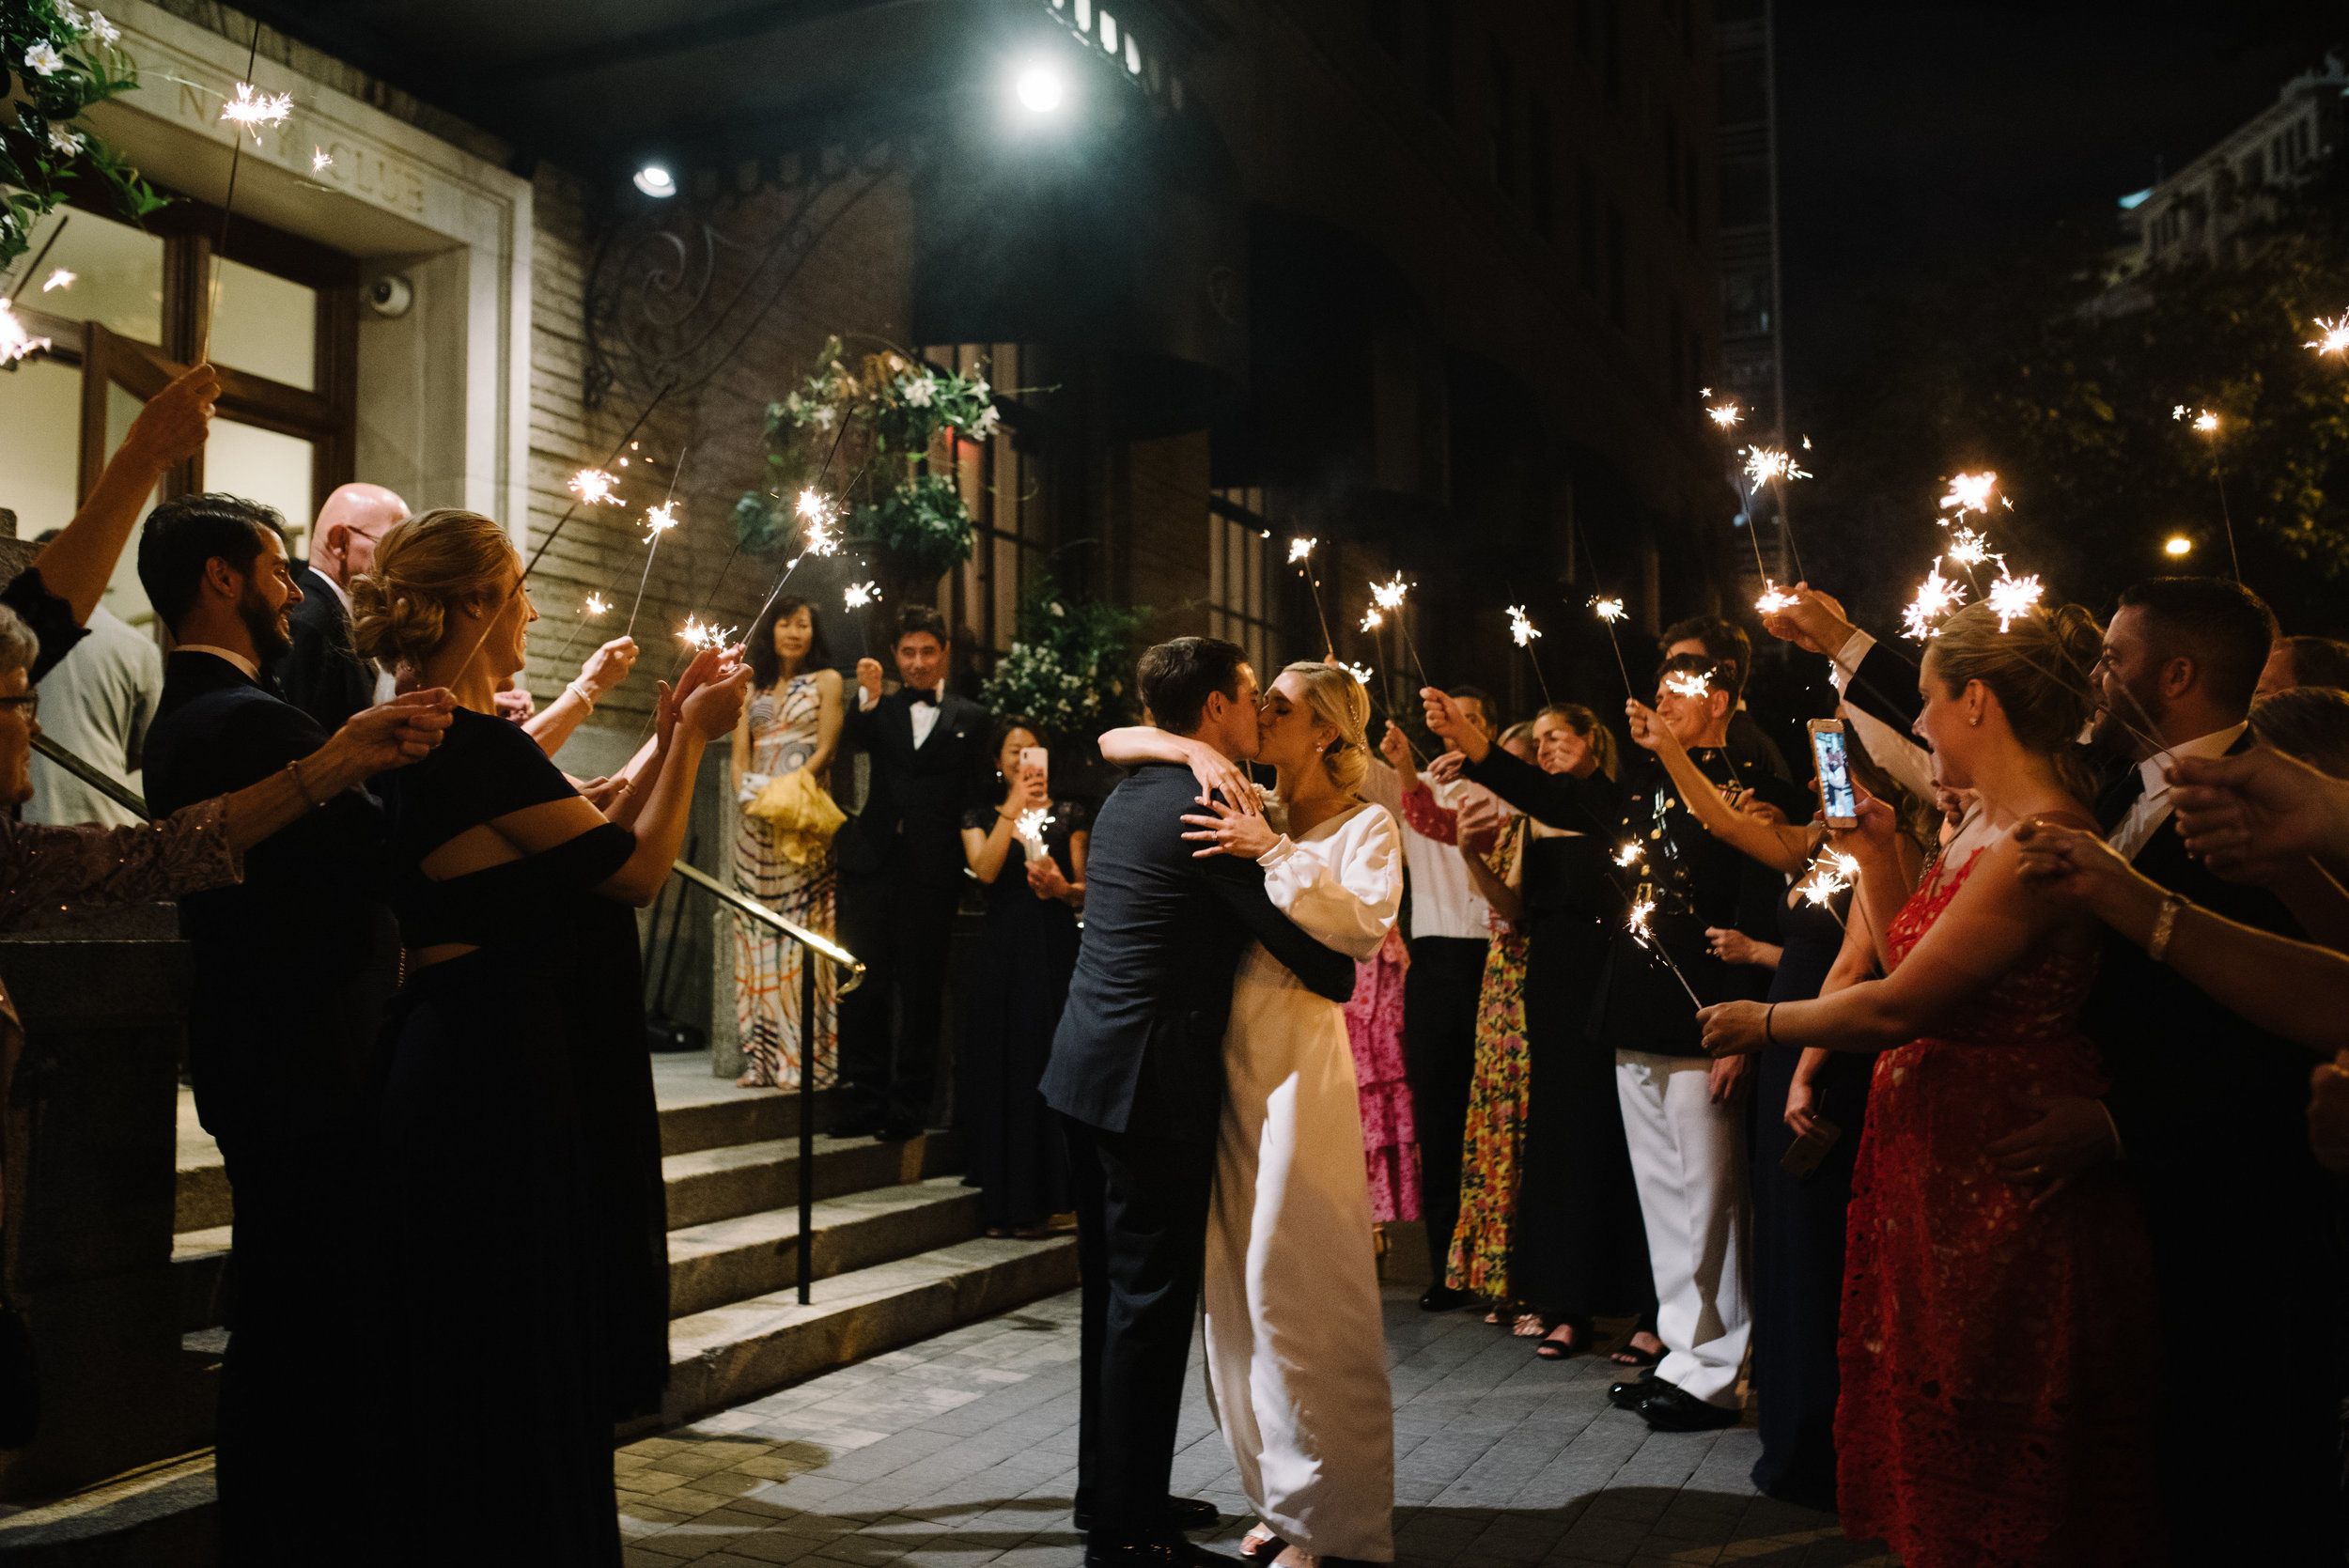 Sparks fly - How perfect is this sparkler exit? After dancing all night, Erica and Scott were sent off in style by their friends and family is this beautiful sendoff!